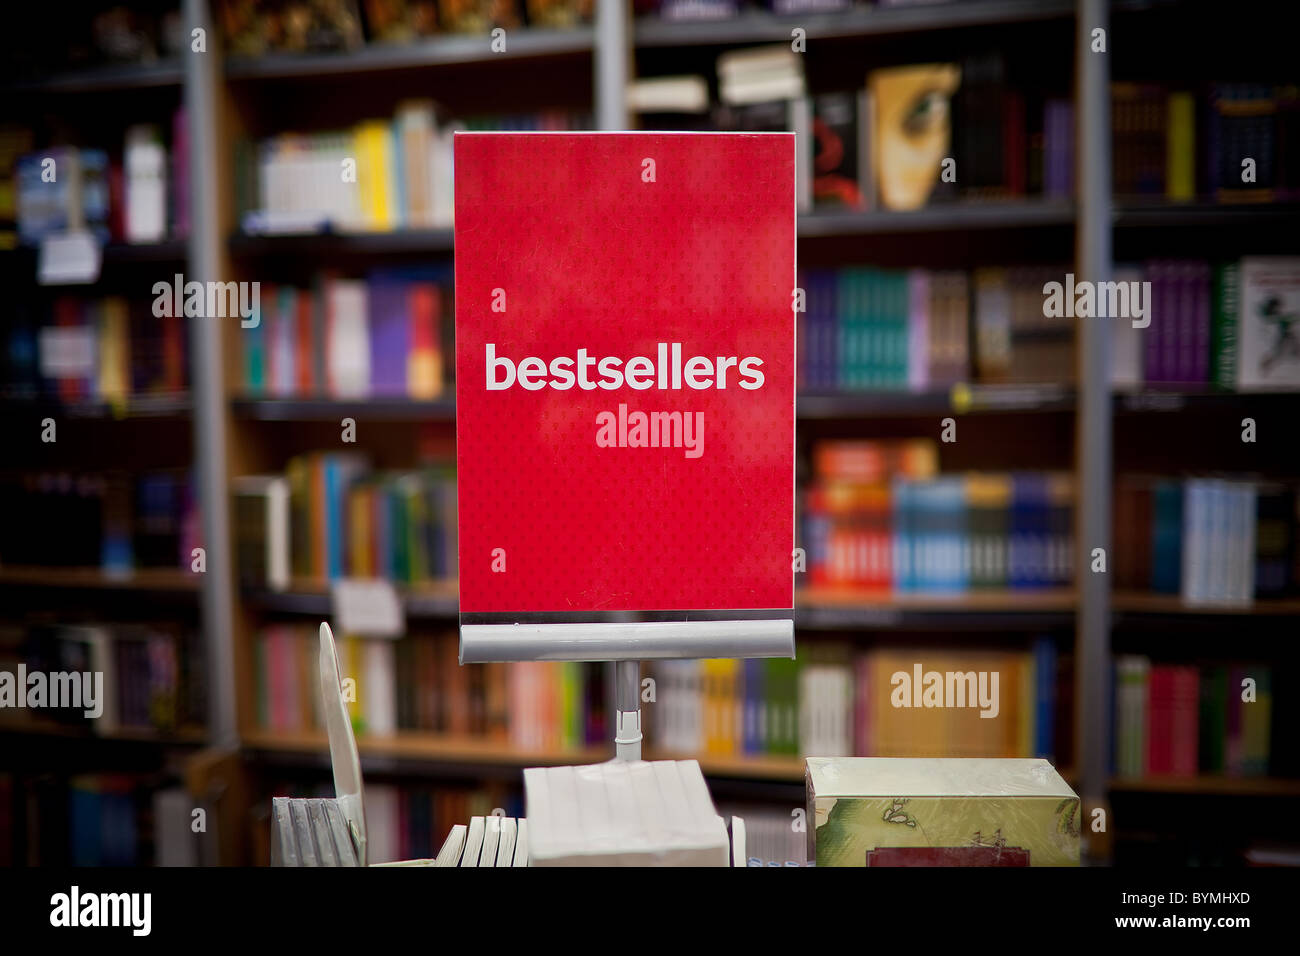 Bestsellers area in bookstore - many books in the background. - Stock Image